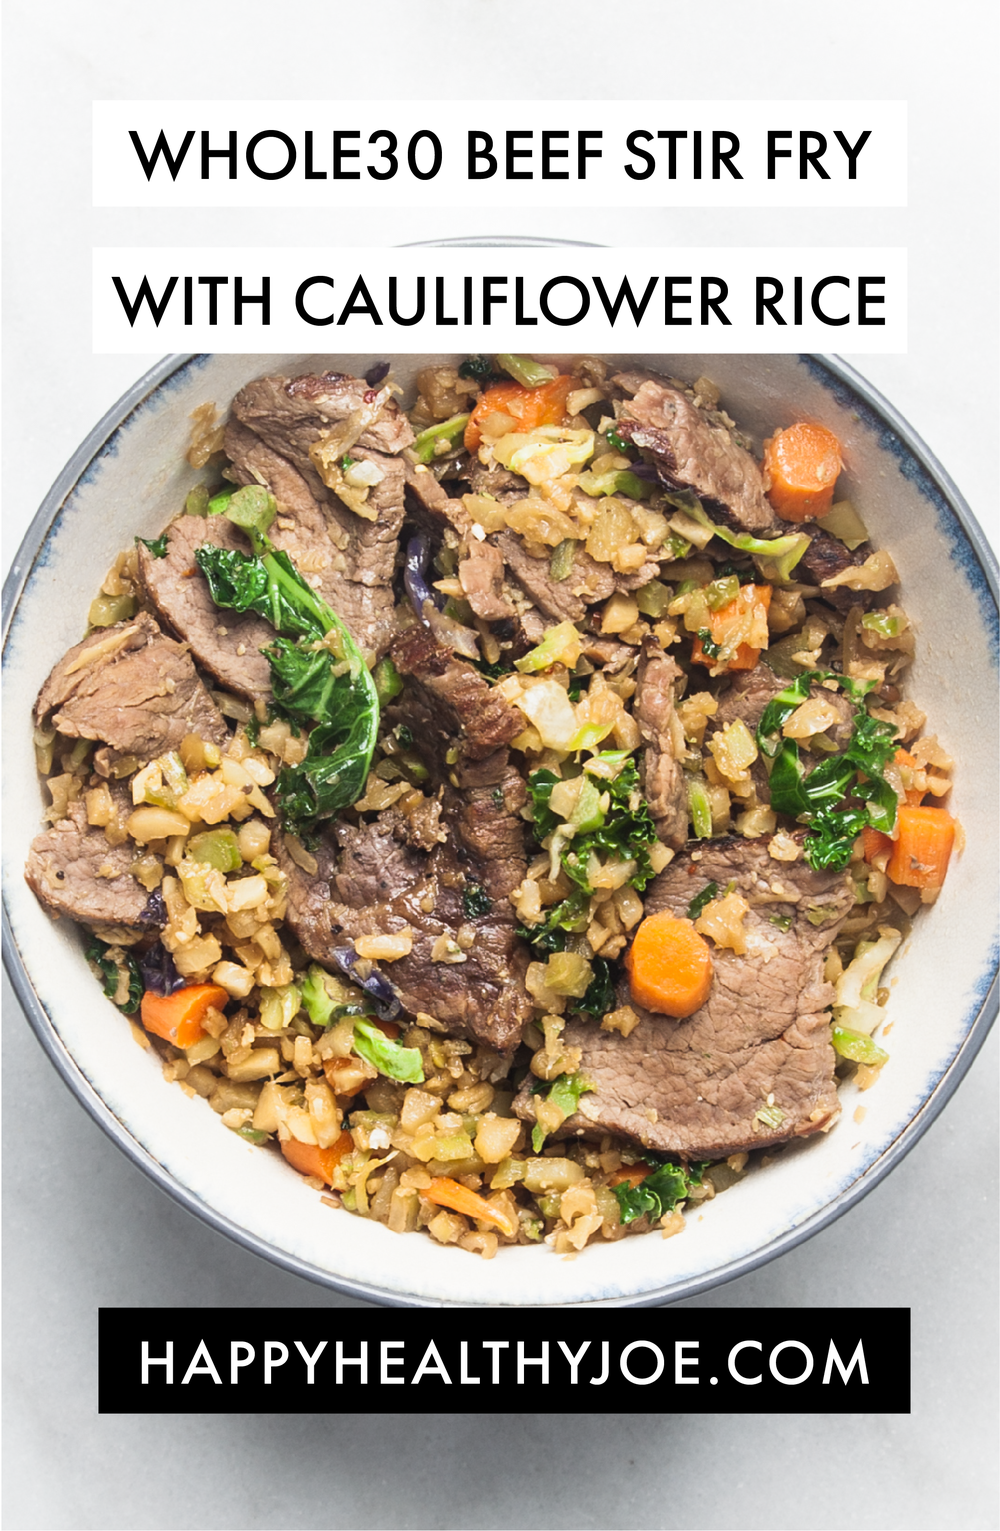 RECIPE: Whole30/Paleo Mongolian Beef Stir-Fry With Cauliflower Rice | Happy Healthy Joe | Integrative Health Coach